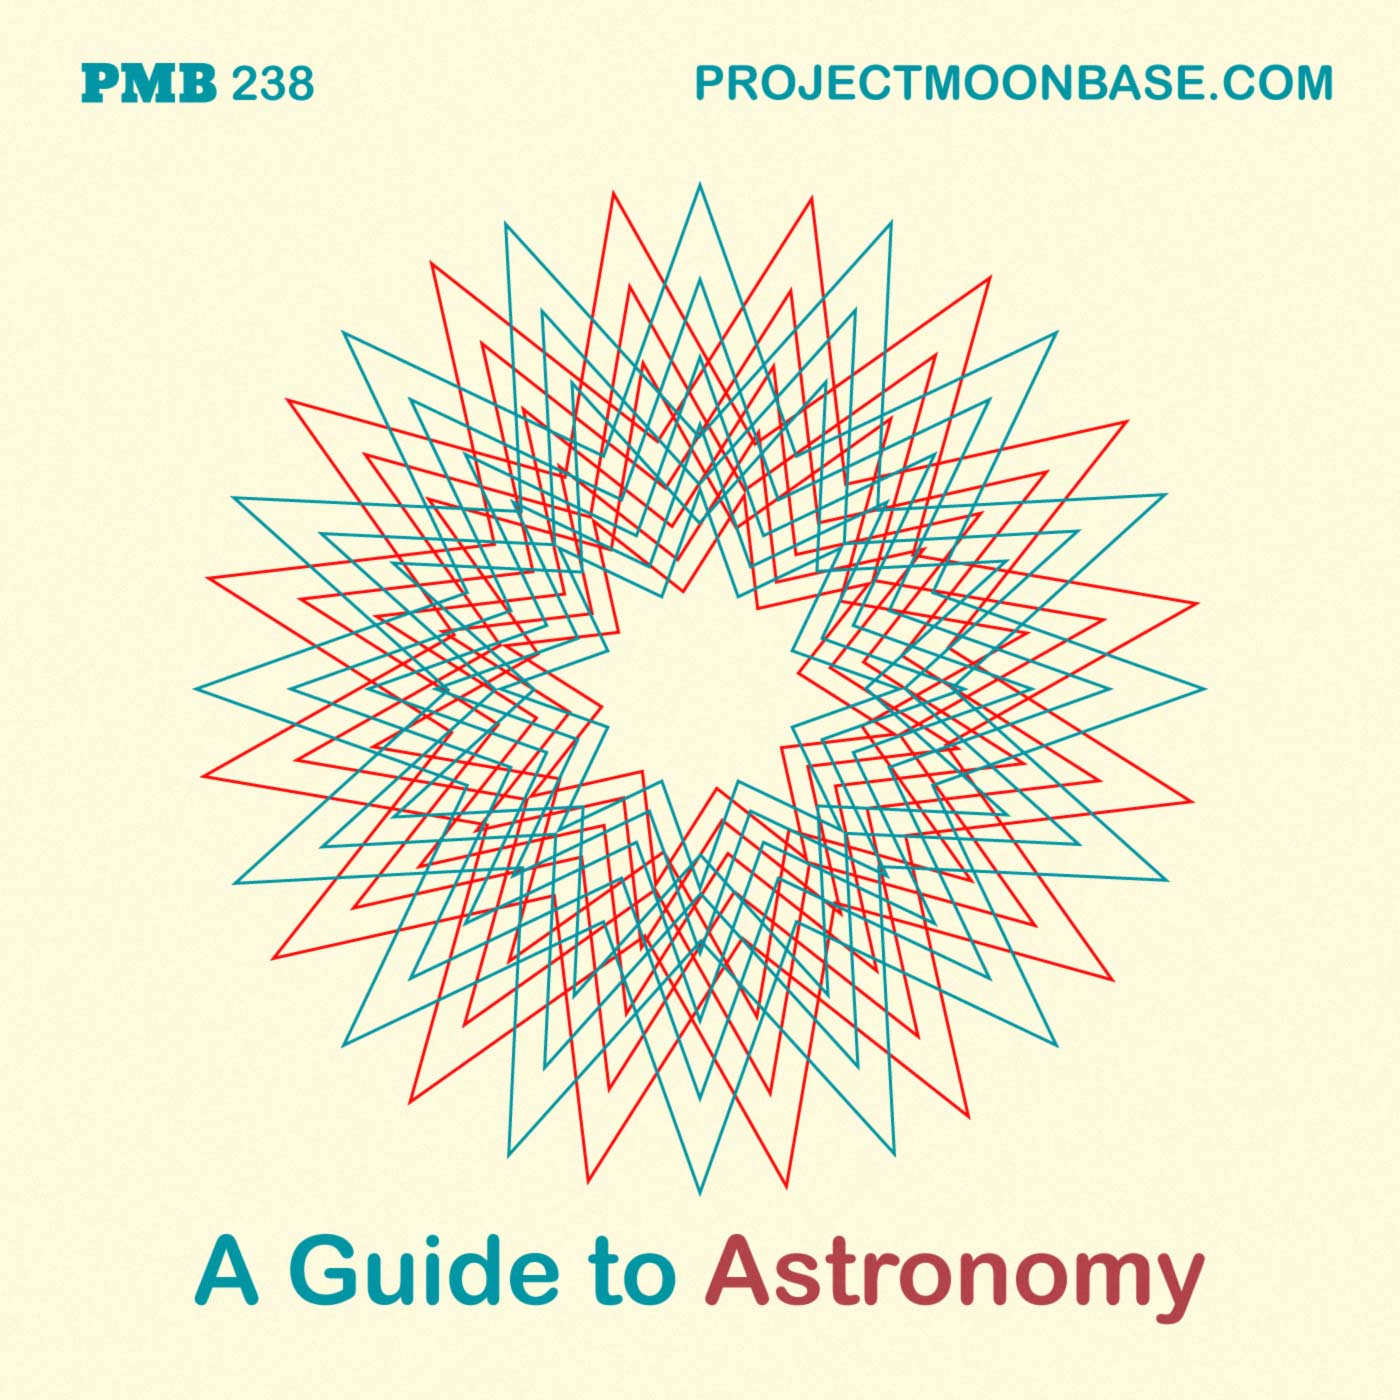 PMB238: A Guide to Astronomy